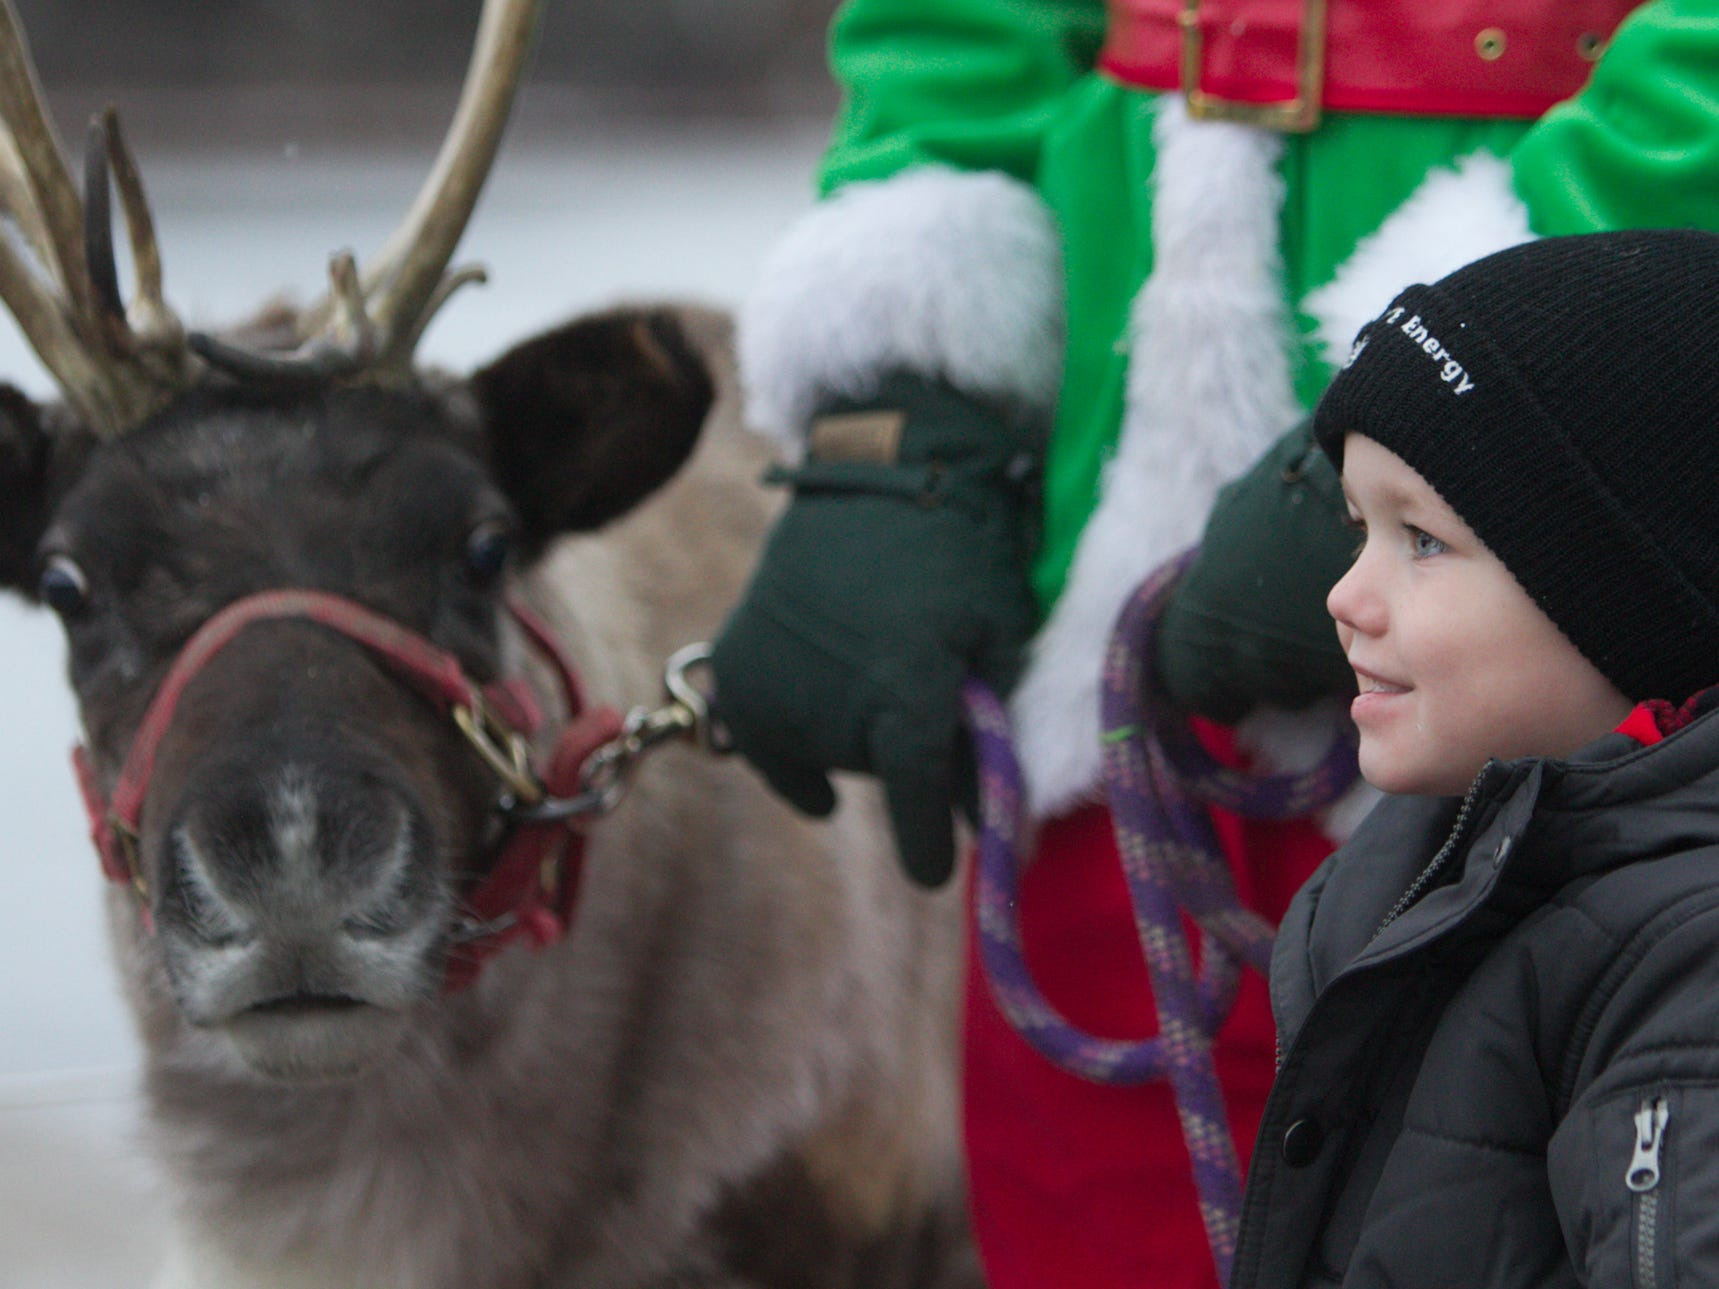 3-year-old Max Fry poses with Bell, a reindeer from Carousel Acres Saturday, Nov. 17, 2018 at the Brighton Holiday Glow.